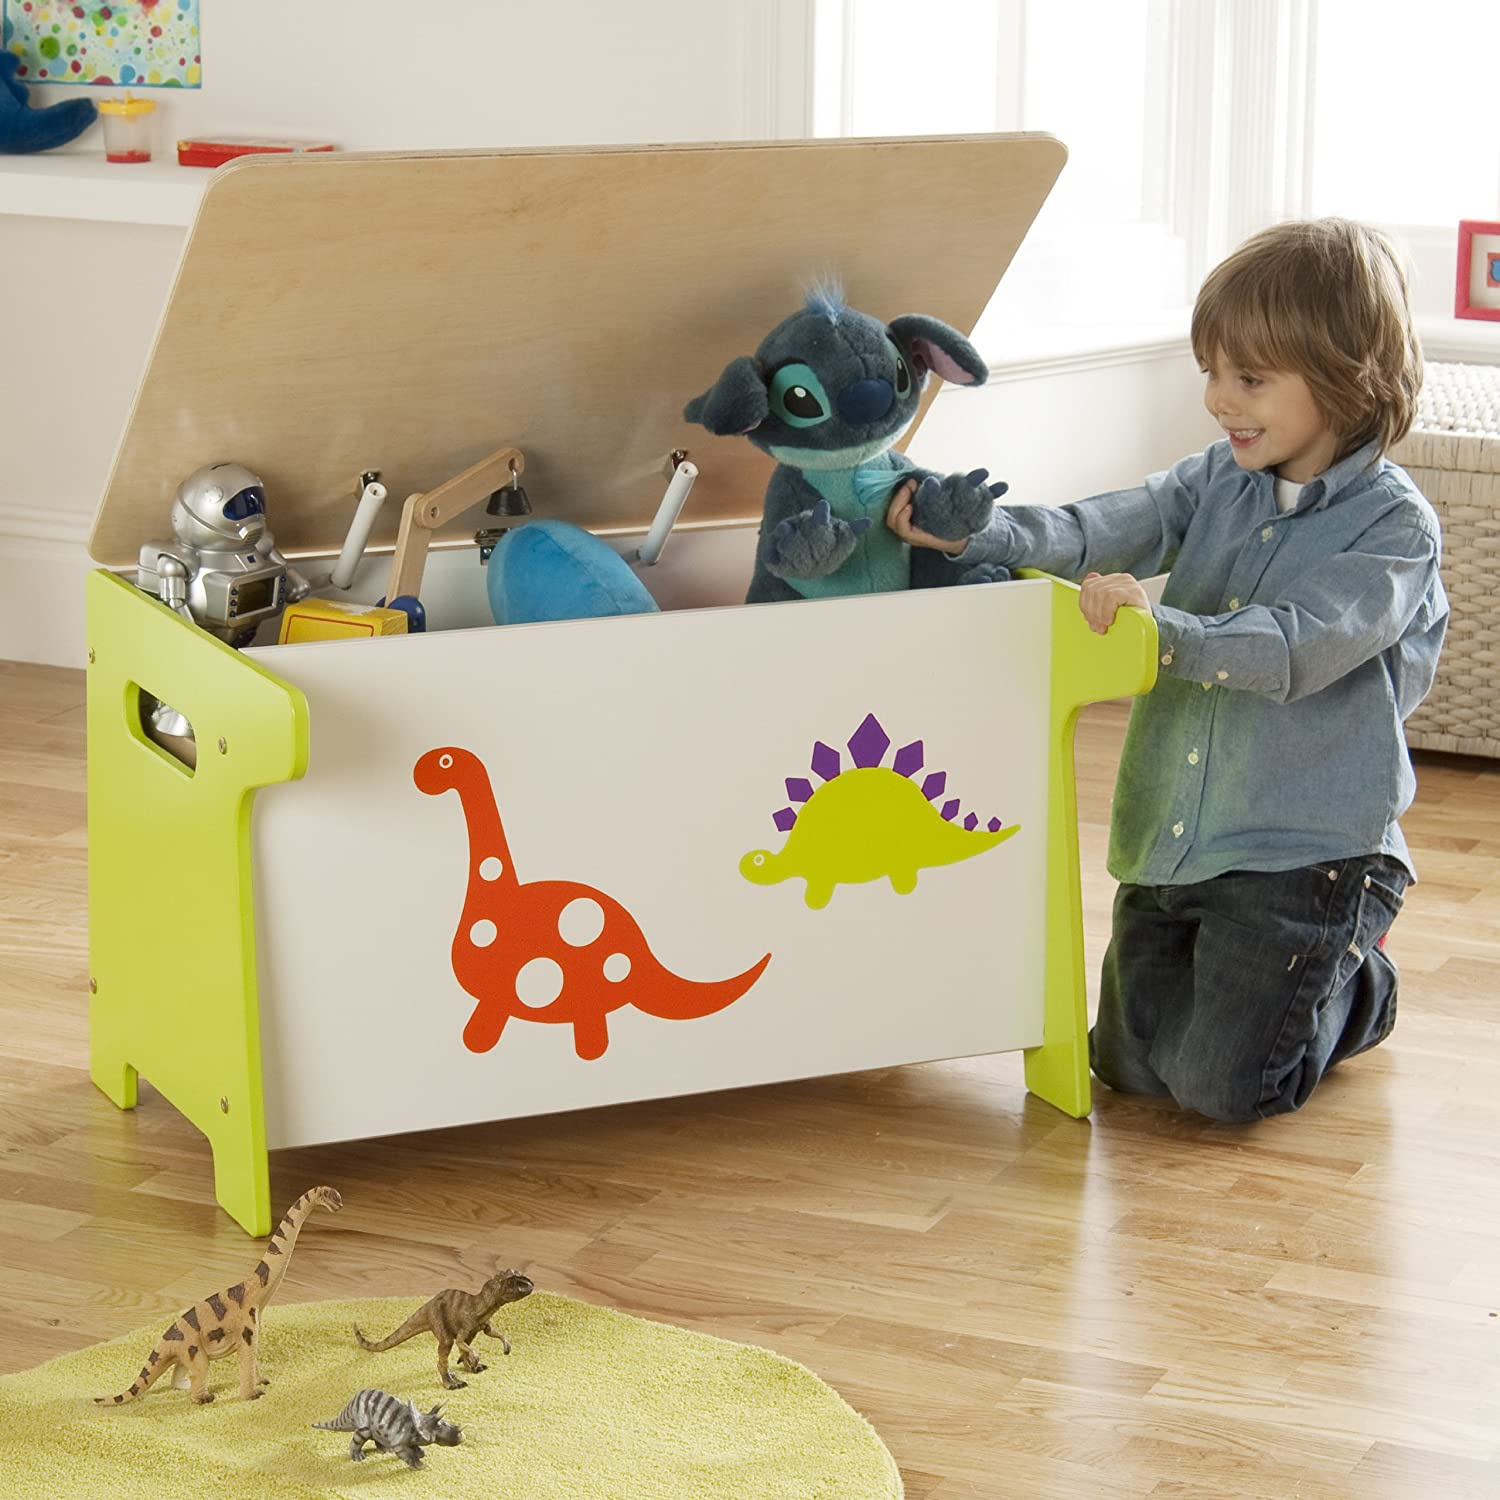 Millhouse Children s Dinosaur Toy Box and Desk Amazon